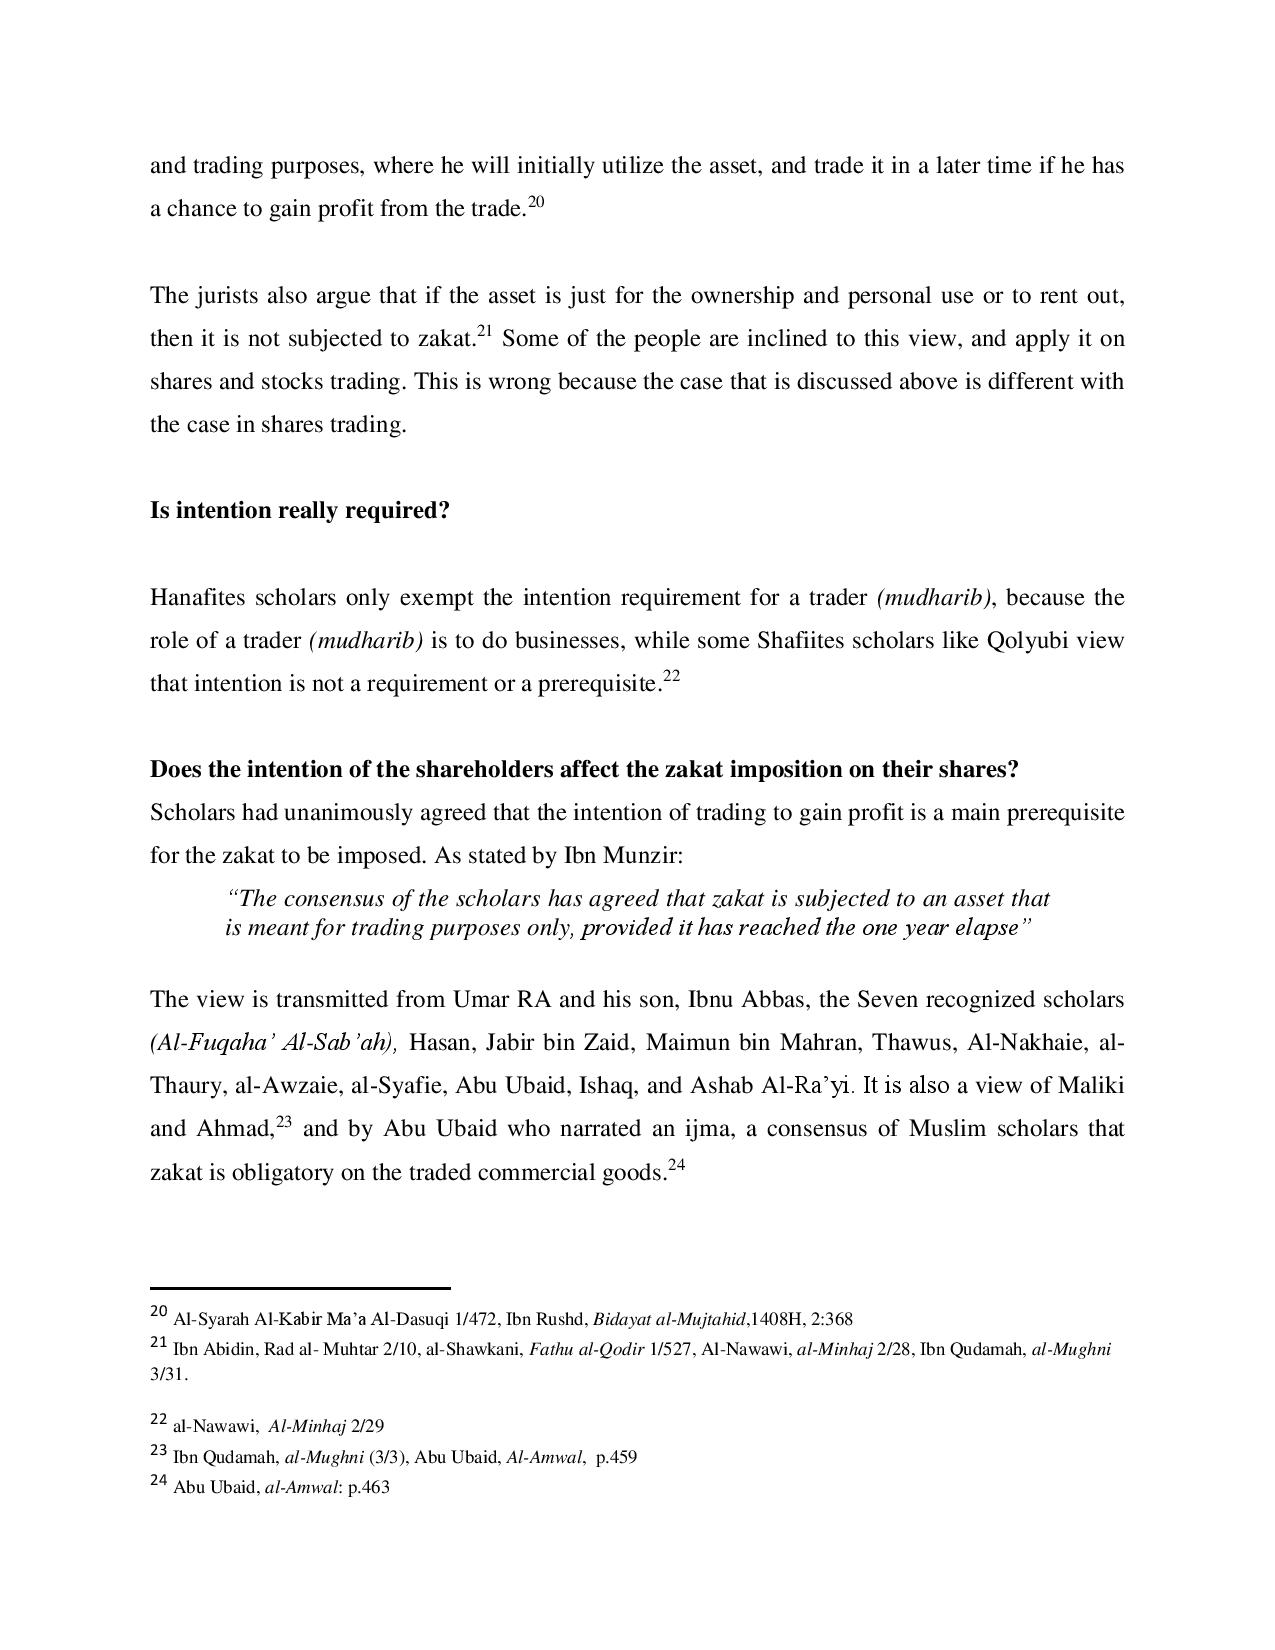 Zakat-Obligation-on-Shares-from-Shariah-Perspective-0112016-page-018